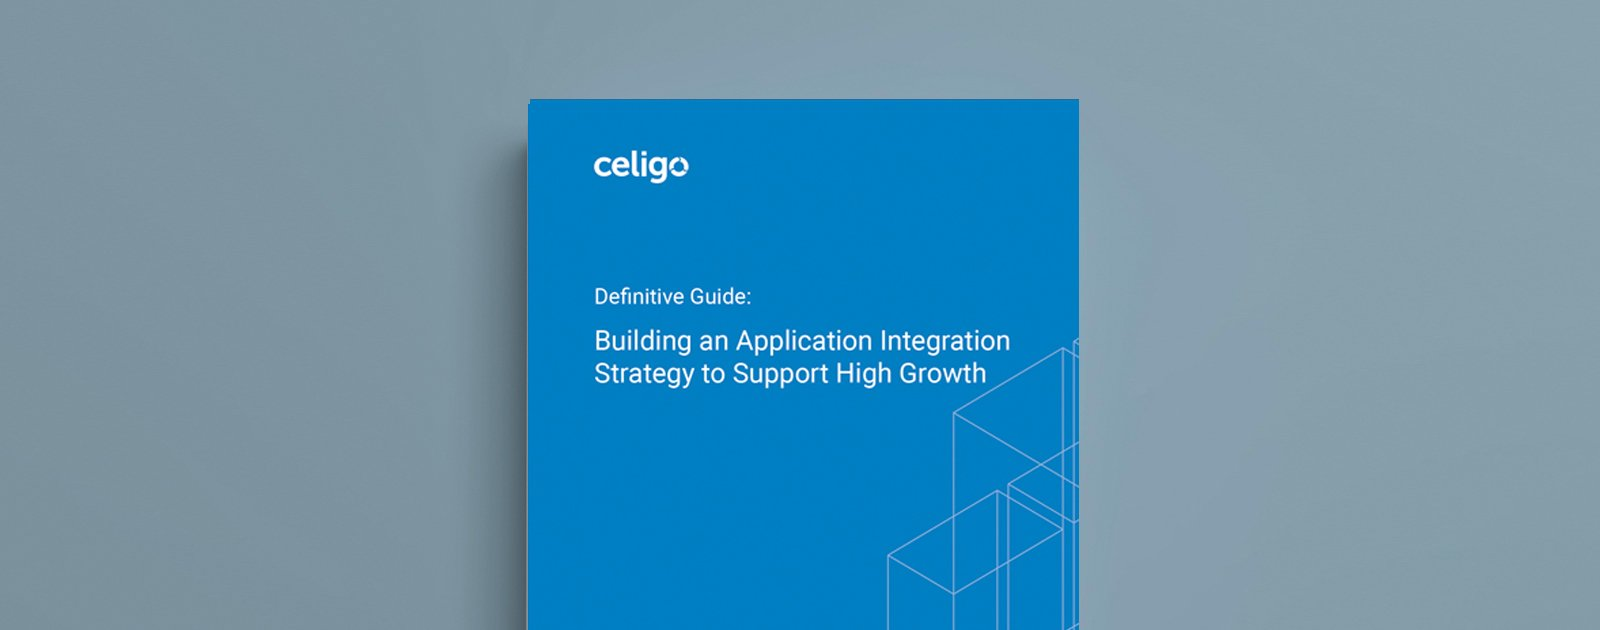 Definitive Guide: Building an Application Integration Strategy to Support High Growth